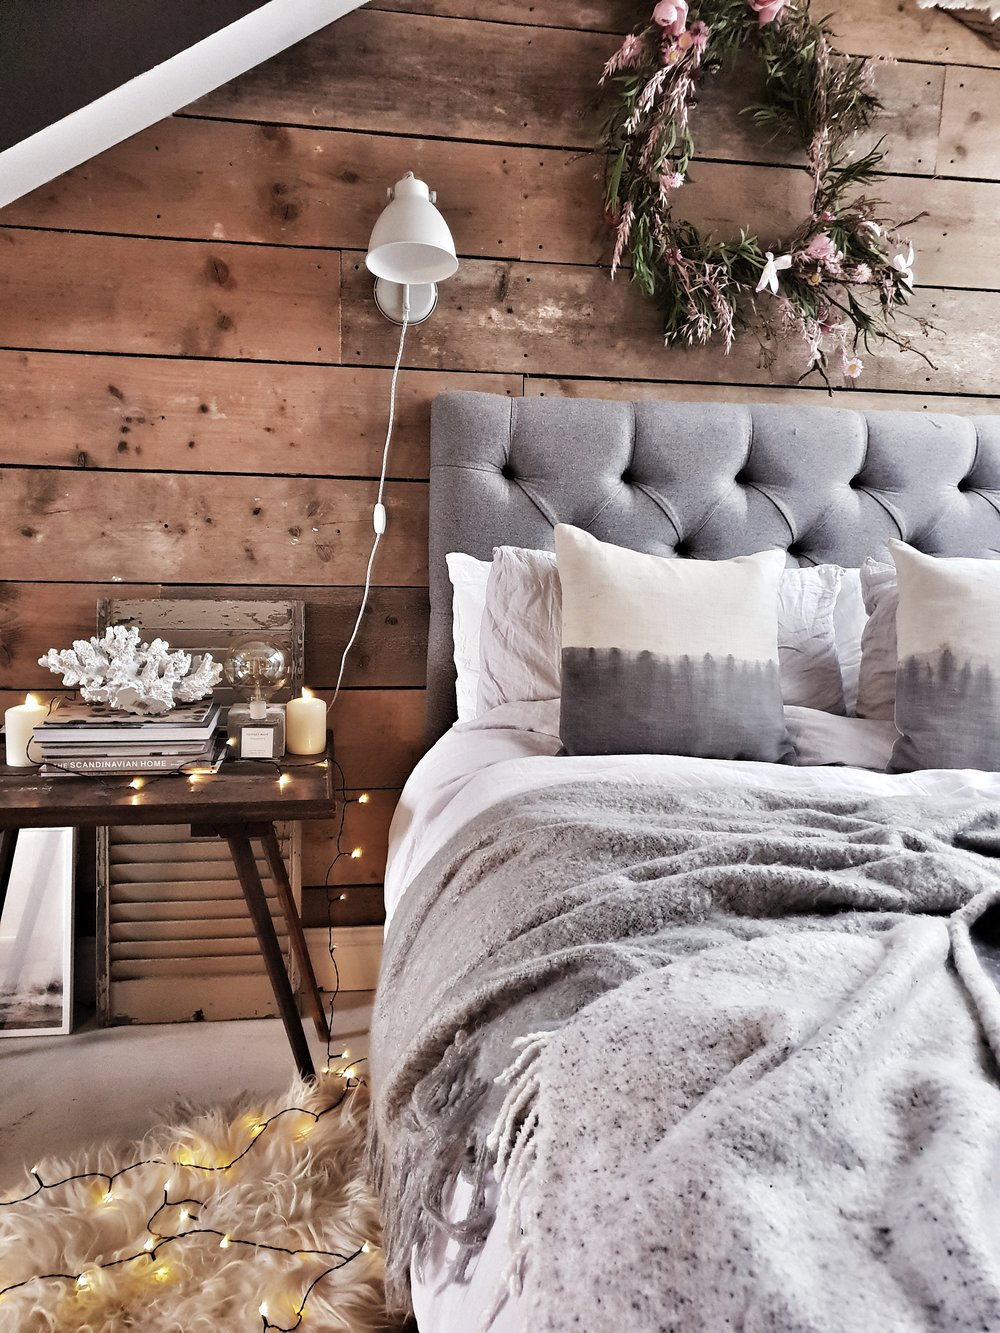 Sheepskins add romance and a touch of a Game of Thrones feel to the bedroom floor